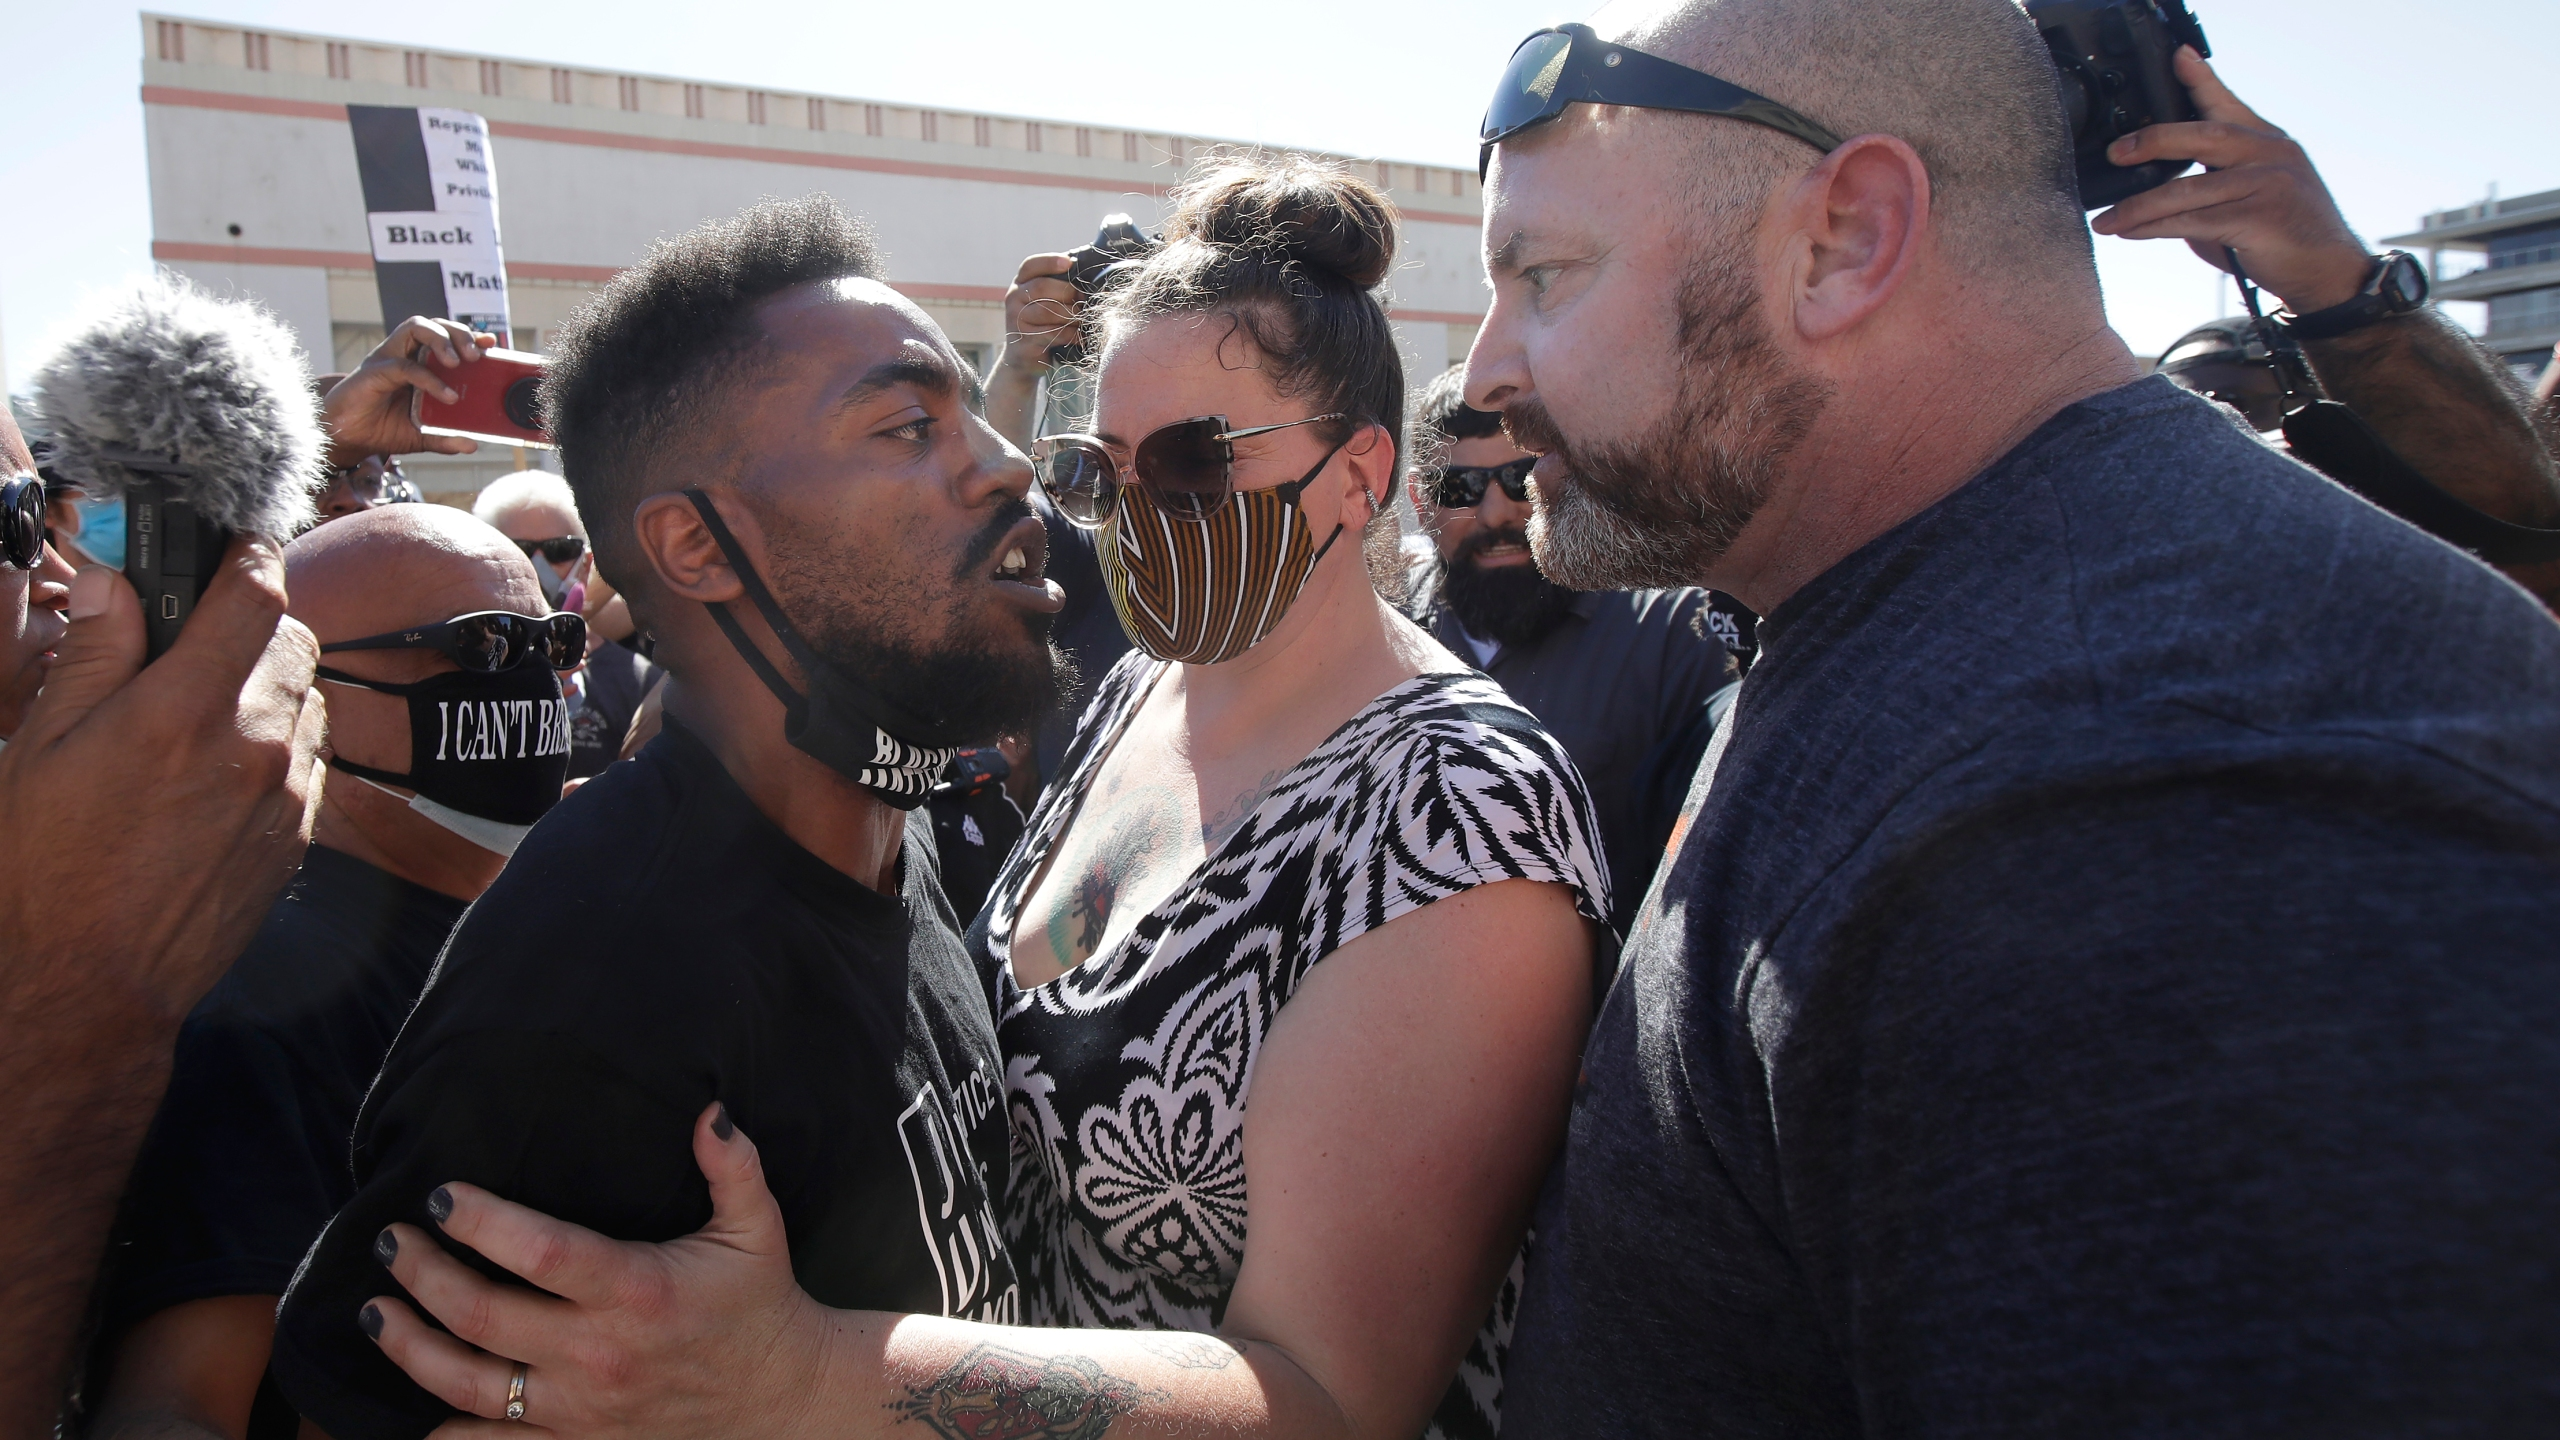 Two people confront each other during a protest calling for an end to racial injustice in Martinez on July 12, 2020. (AP Photo/Jeff Chiu)